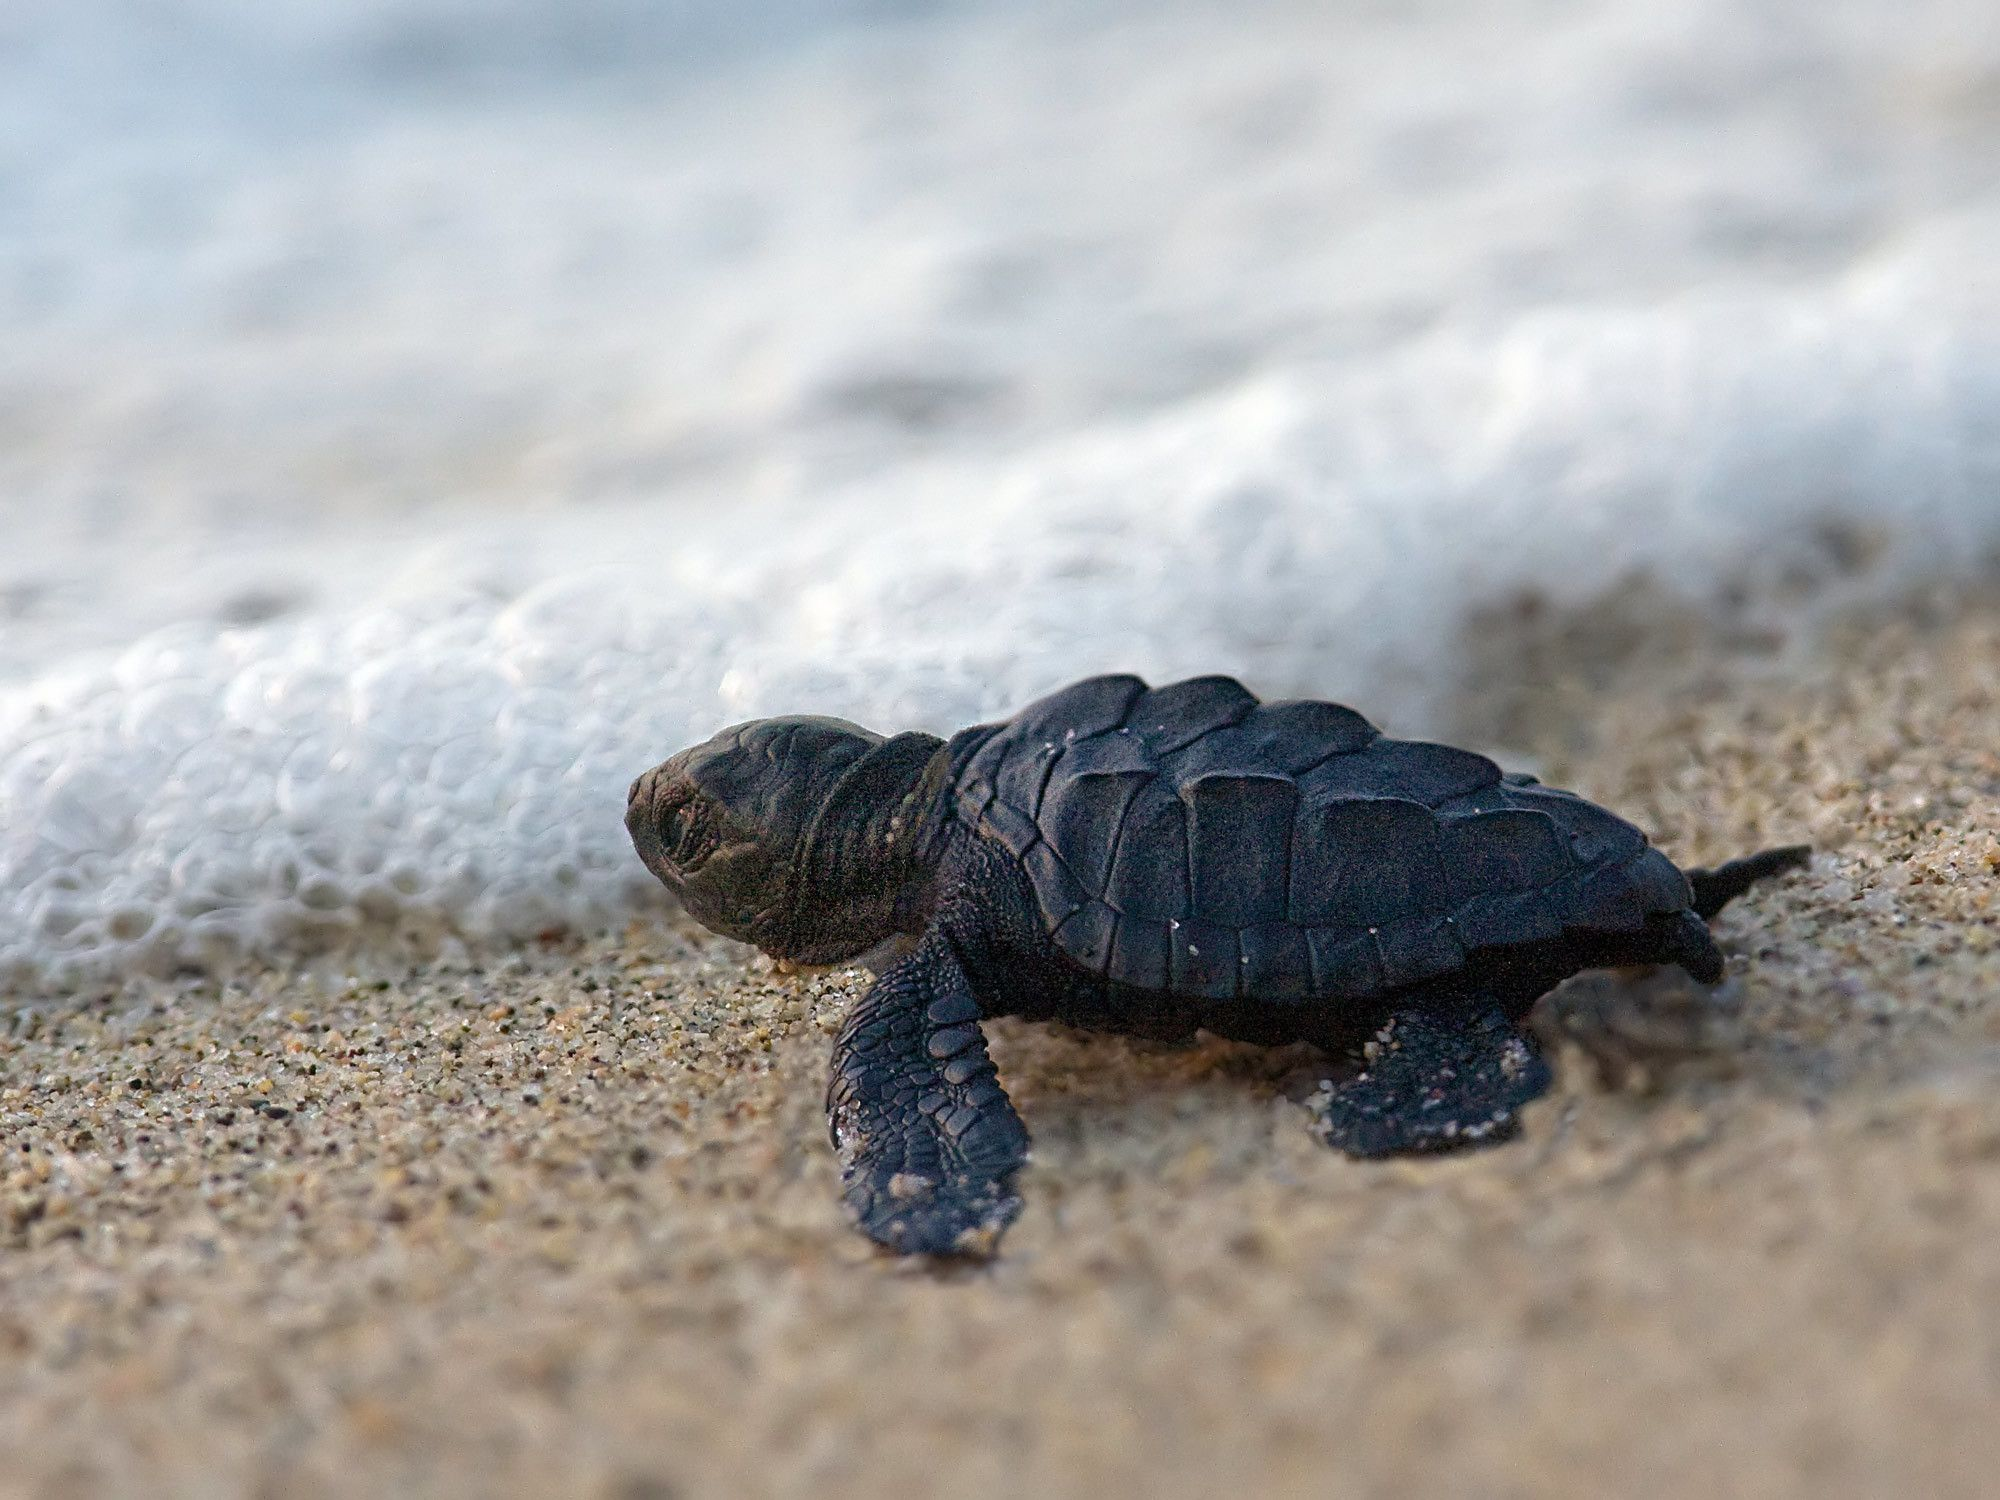 2000x1500 Baby Turtle Wallpaper 9 - Get HD Wallpapers Free